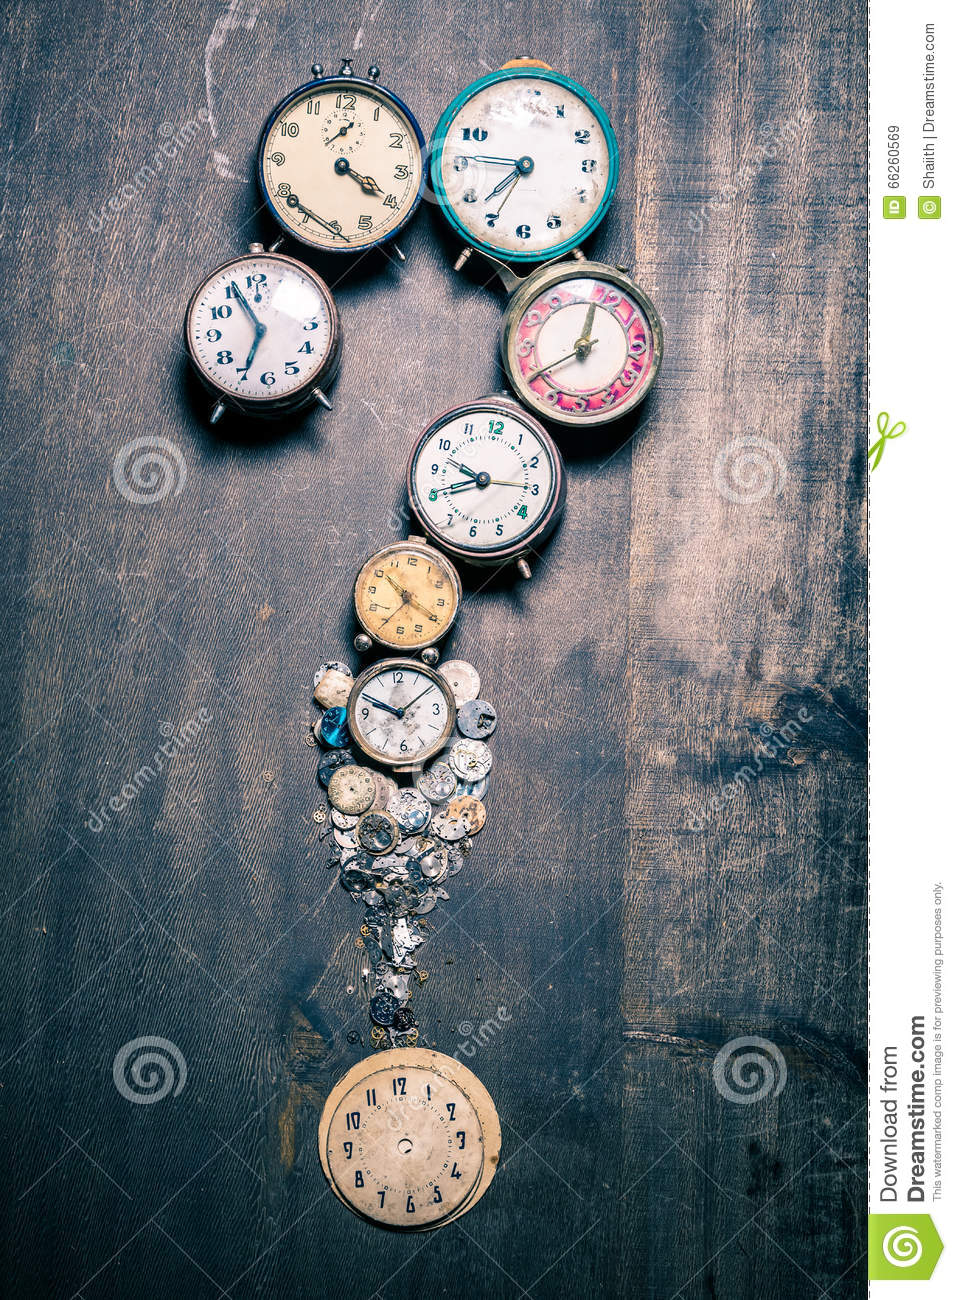 Time and questions mark